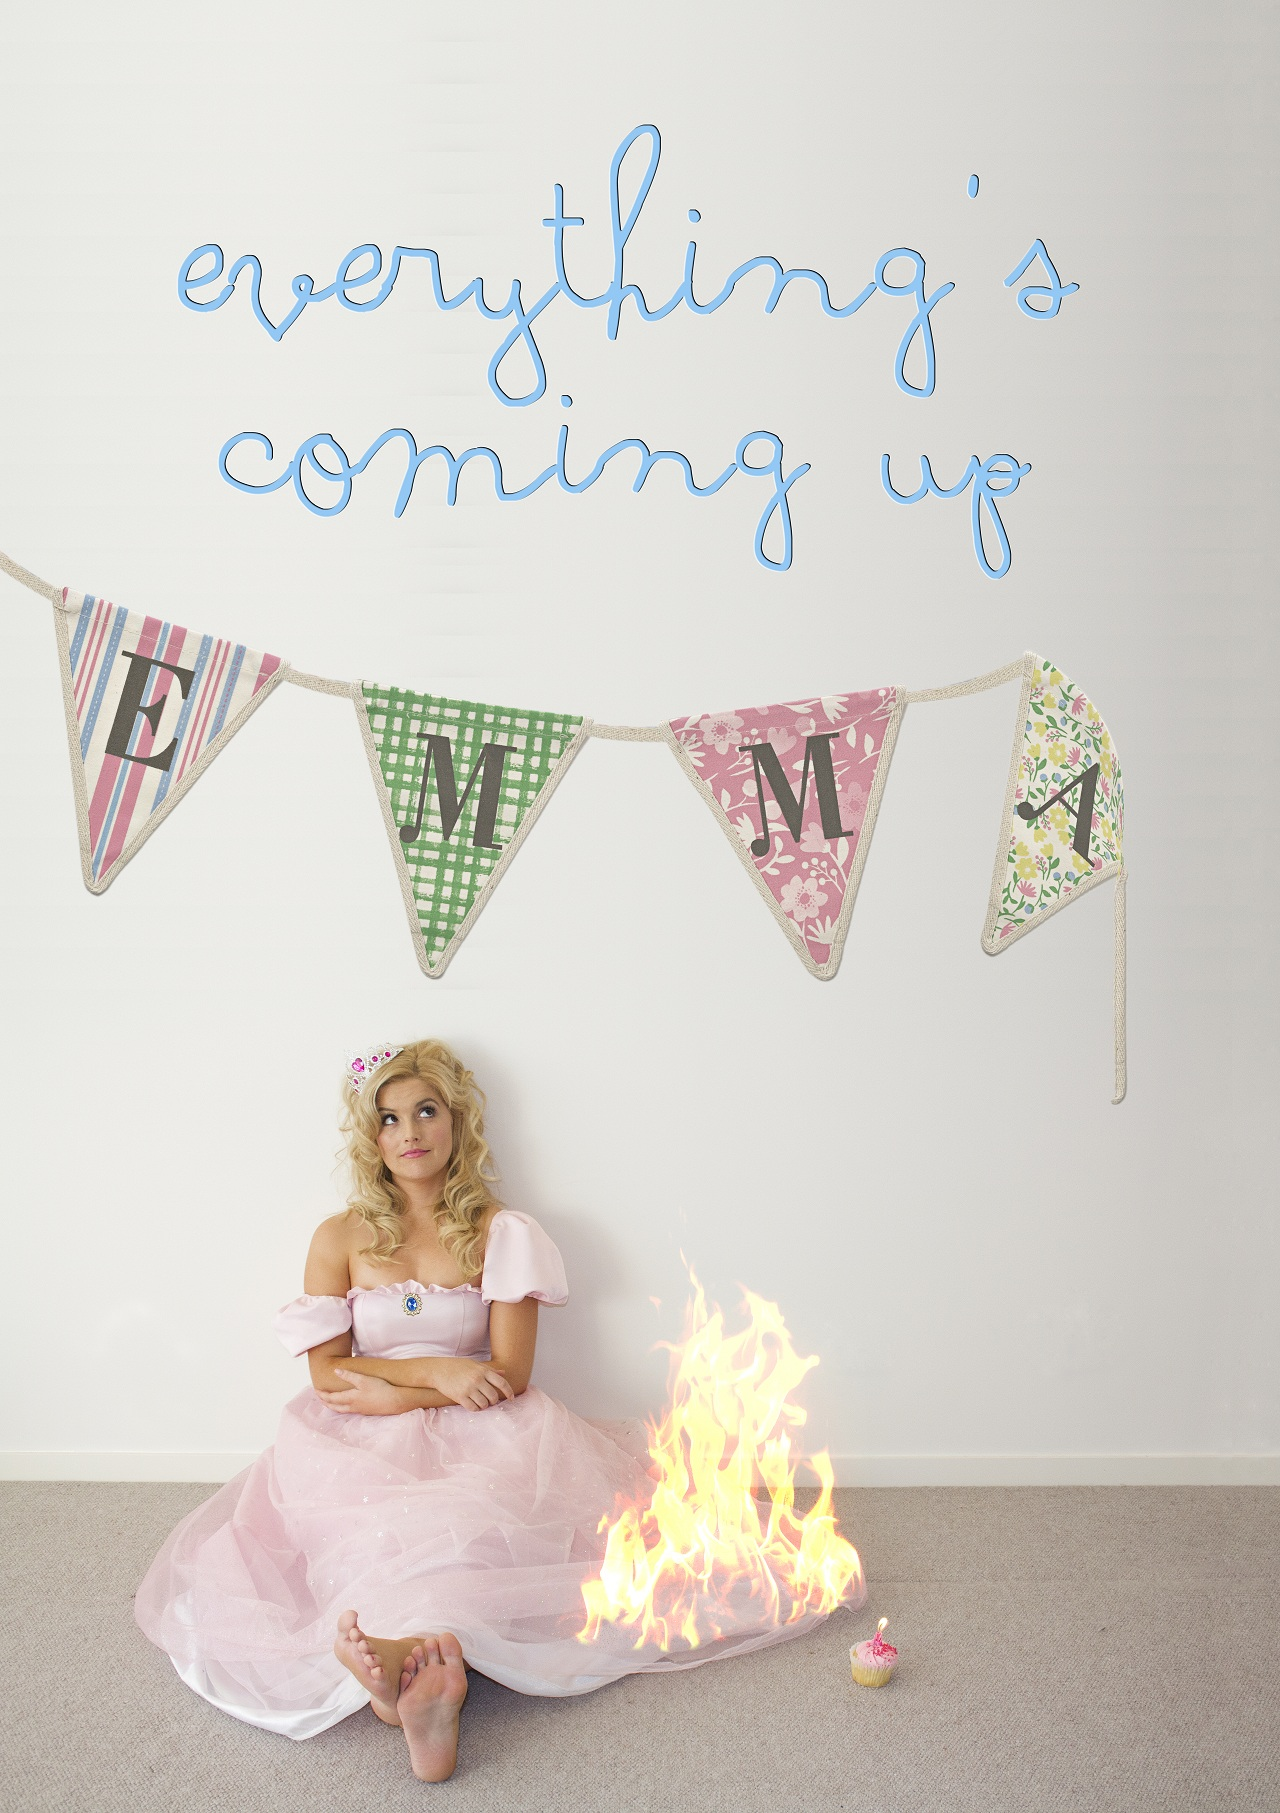 EVERYTHING'S COMING UP EMMA - Emma hasn't eaten an actual vegetable since 2007.For Emma Holliday, things are looking grim. She's single, broke and worst of all, a children's party entertainer. Misfortune seems to cling to her like a polyester koala. She's the black sheep of her family. Yet somehow, Emma keeps a constant ember of hope alive. Hope for a brighter day. Hope for a better break. She's an optimist… a quiet dreamer. And as she doggedly pursues those dreams, we nervously watch and will her on, a la turtle hatchlings dashing toward the waiting ocean en masse. Of course, much like those turtles, hardly any of her dreams make it.Under the mentorship of writer/performer Dan Ilic, we held a reading of our pilot episode of Everything's Coming Up Emma at Sydney's Capitol Theatre. This led to us capturing the attention of Andrew Denton and leading production company Cordell Jigsaw Zapruder.CJZ have provided us with invaluable development support and guidance for our project which we are currently developing into a half hour scripted comedy series.